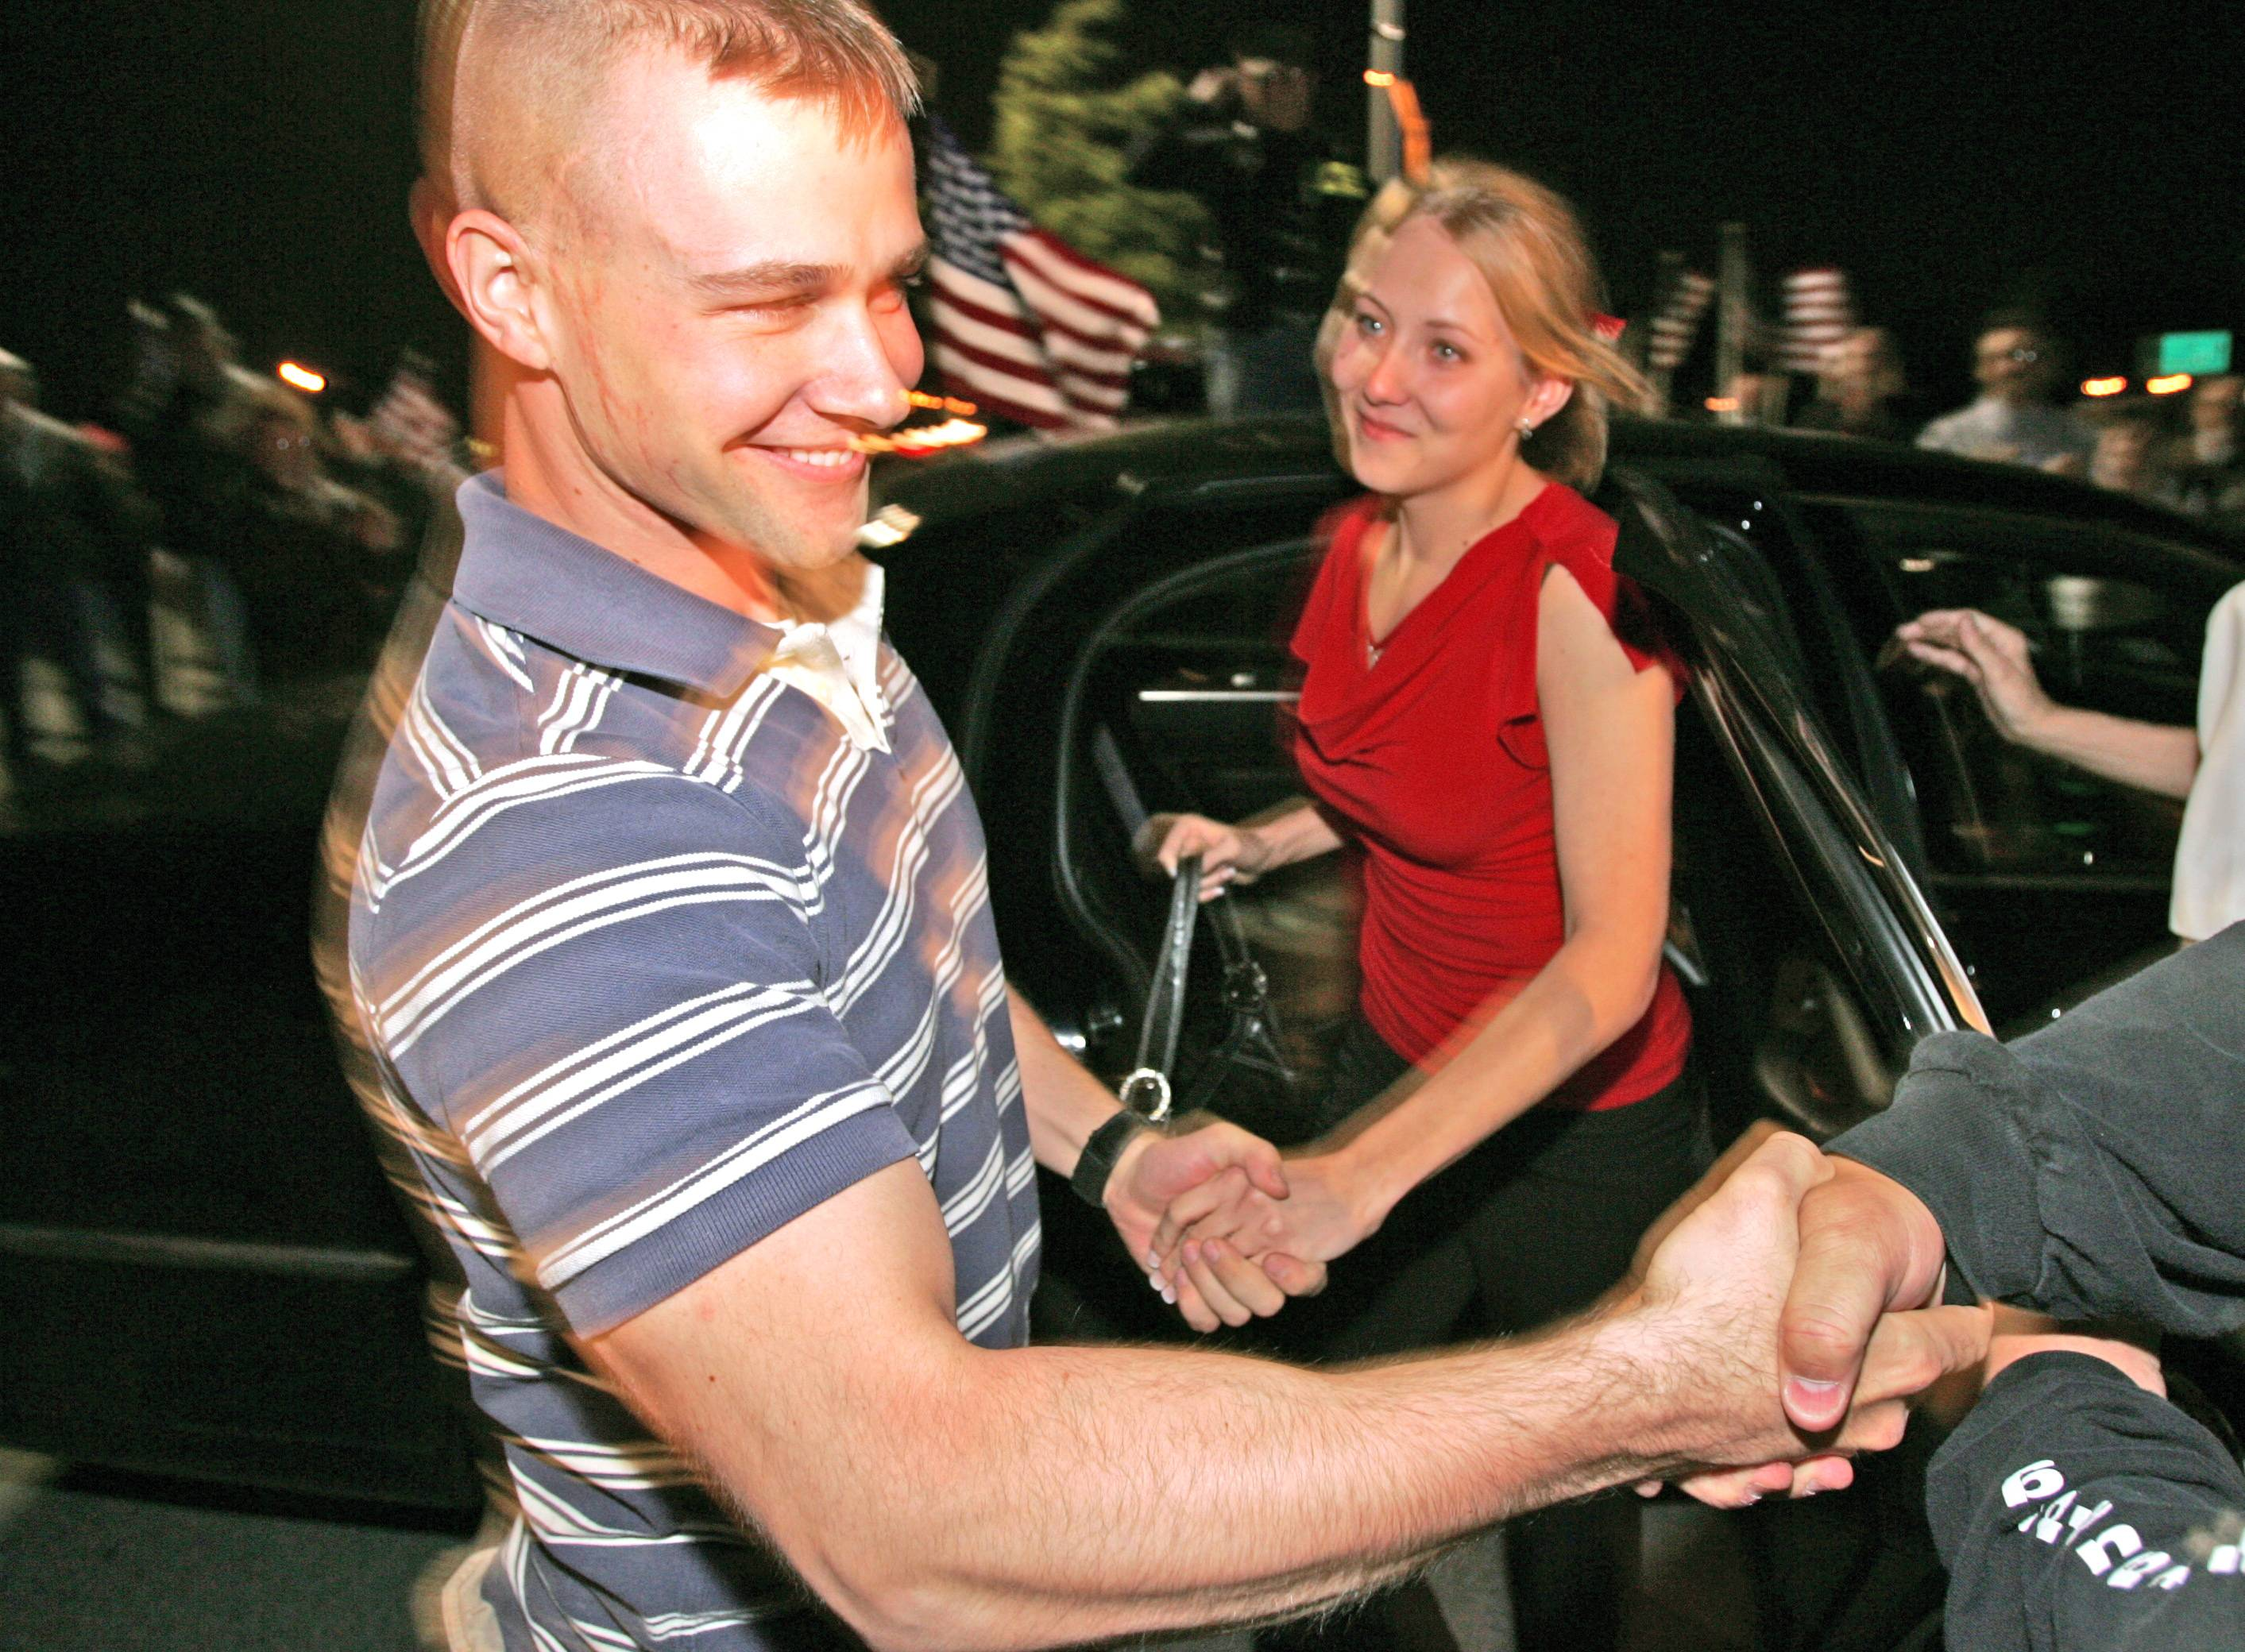 Christopher Lindahl, a first lieutenant with the U.S. Marine Corps, returned from Afghanistan and is greeted at the Illinois Tollway Des Plaines Oasis. He exits the car with his fiance Justyna Kurowska. Members of the Patriot Guard riders escorted him back to Lake Zurich.